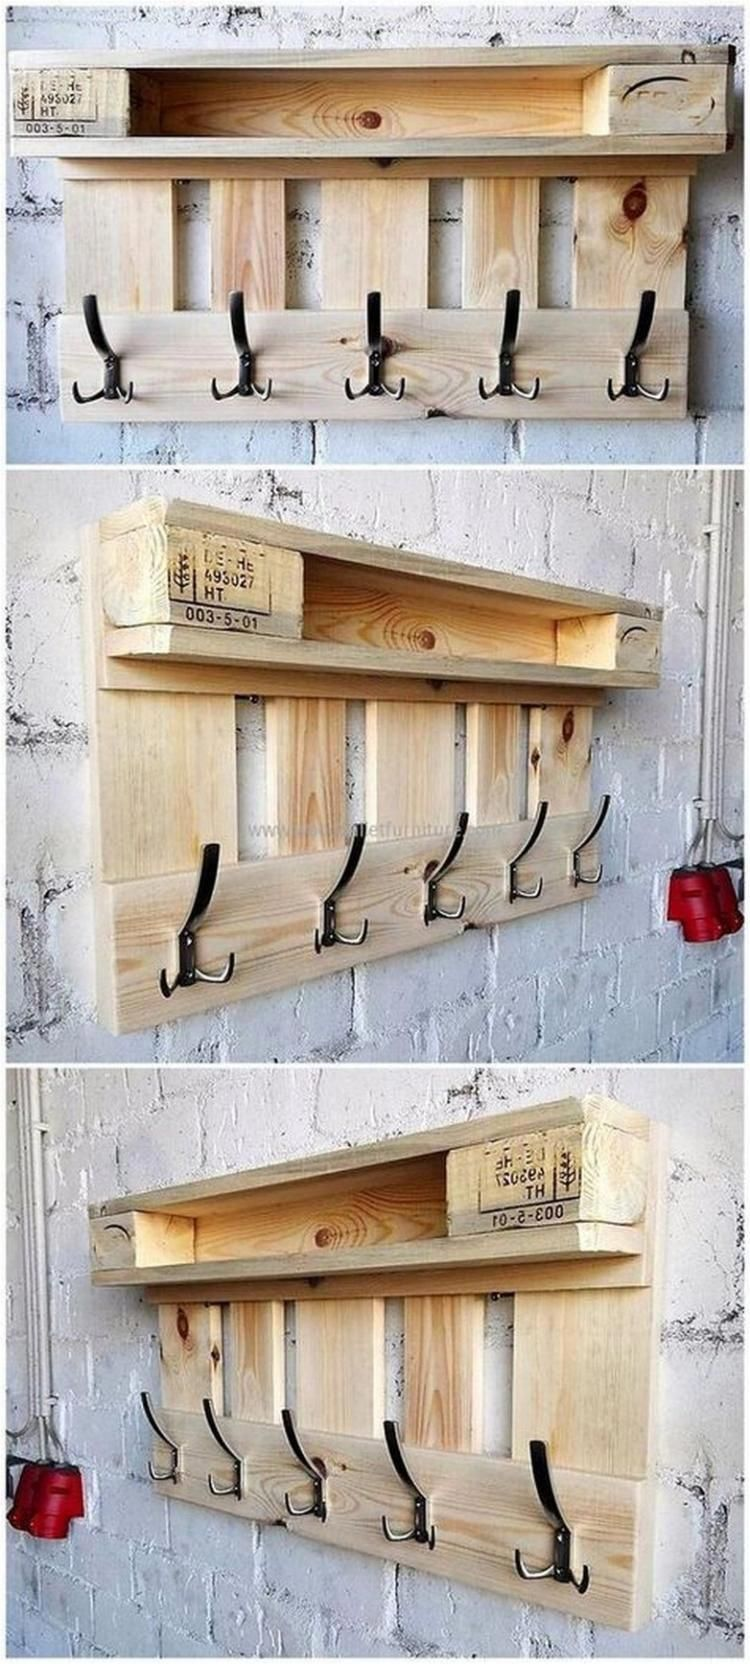 Wood Projects That Make Money Small